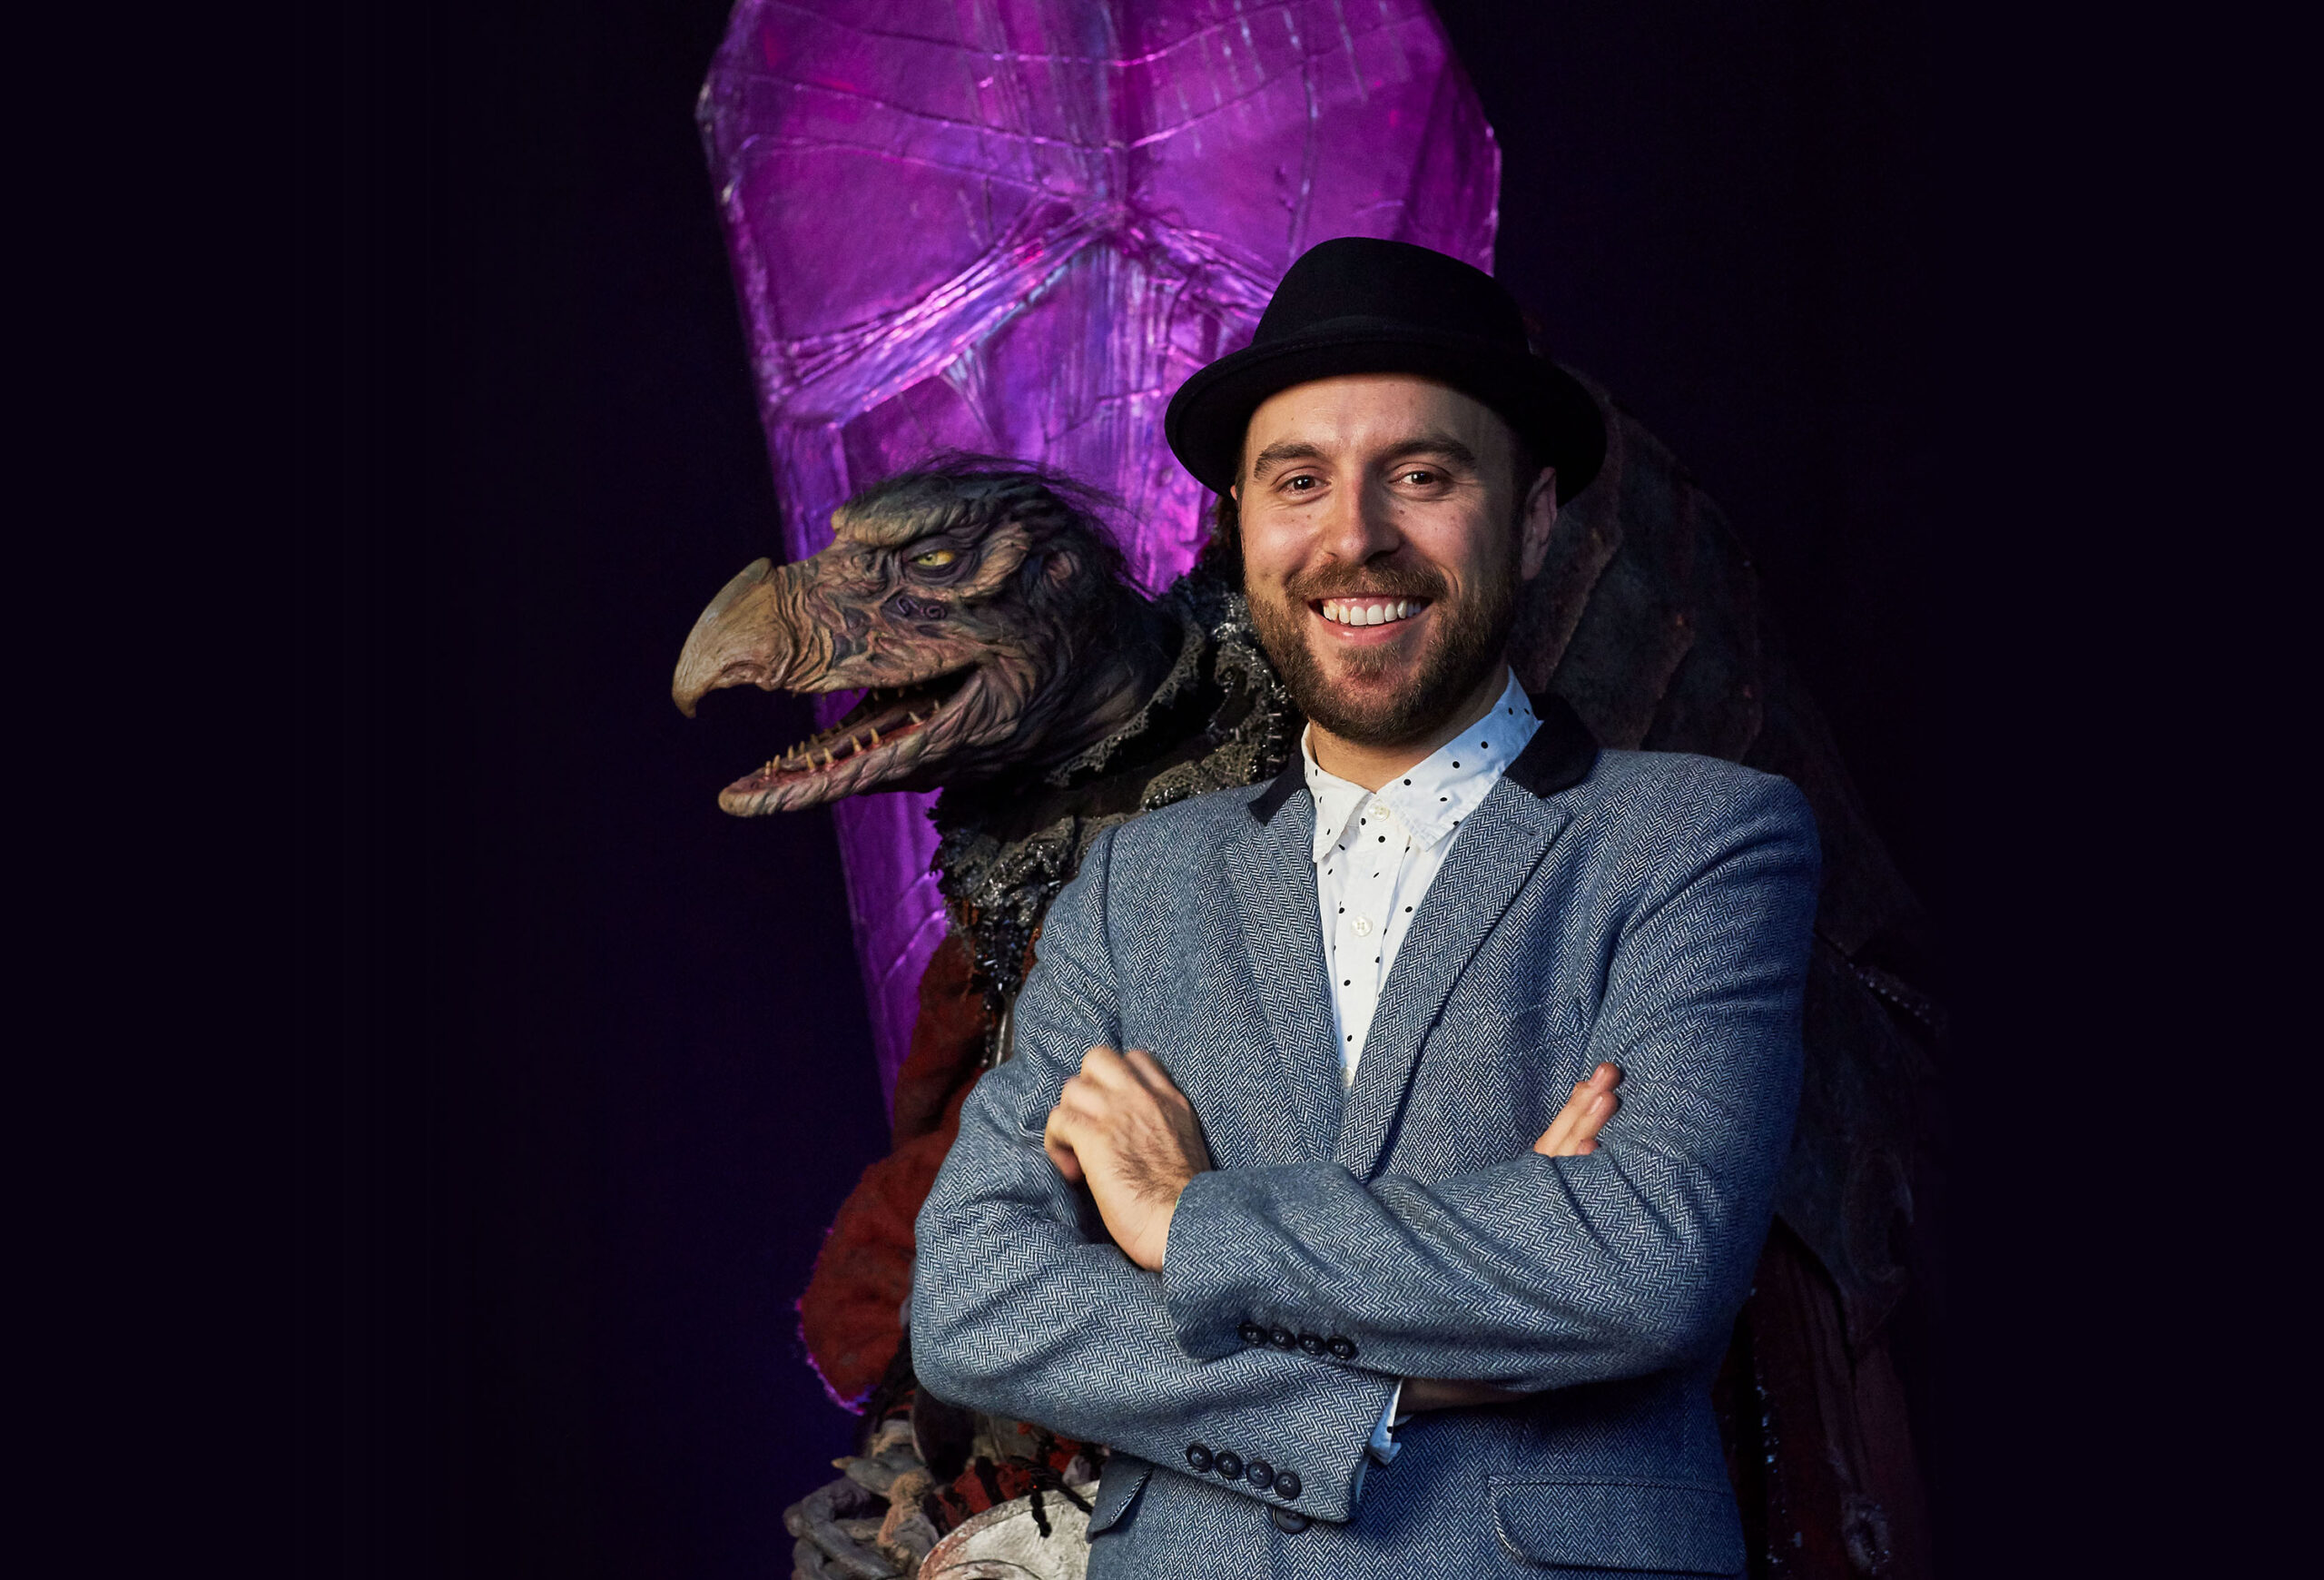 """Warrick Brownlow-Pike and The Chamberlain from """"The Dark Crystal: Age of Resistance"""" (photo: Kevin Baker / Netflix)"""